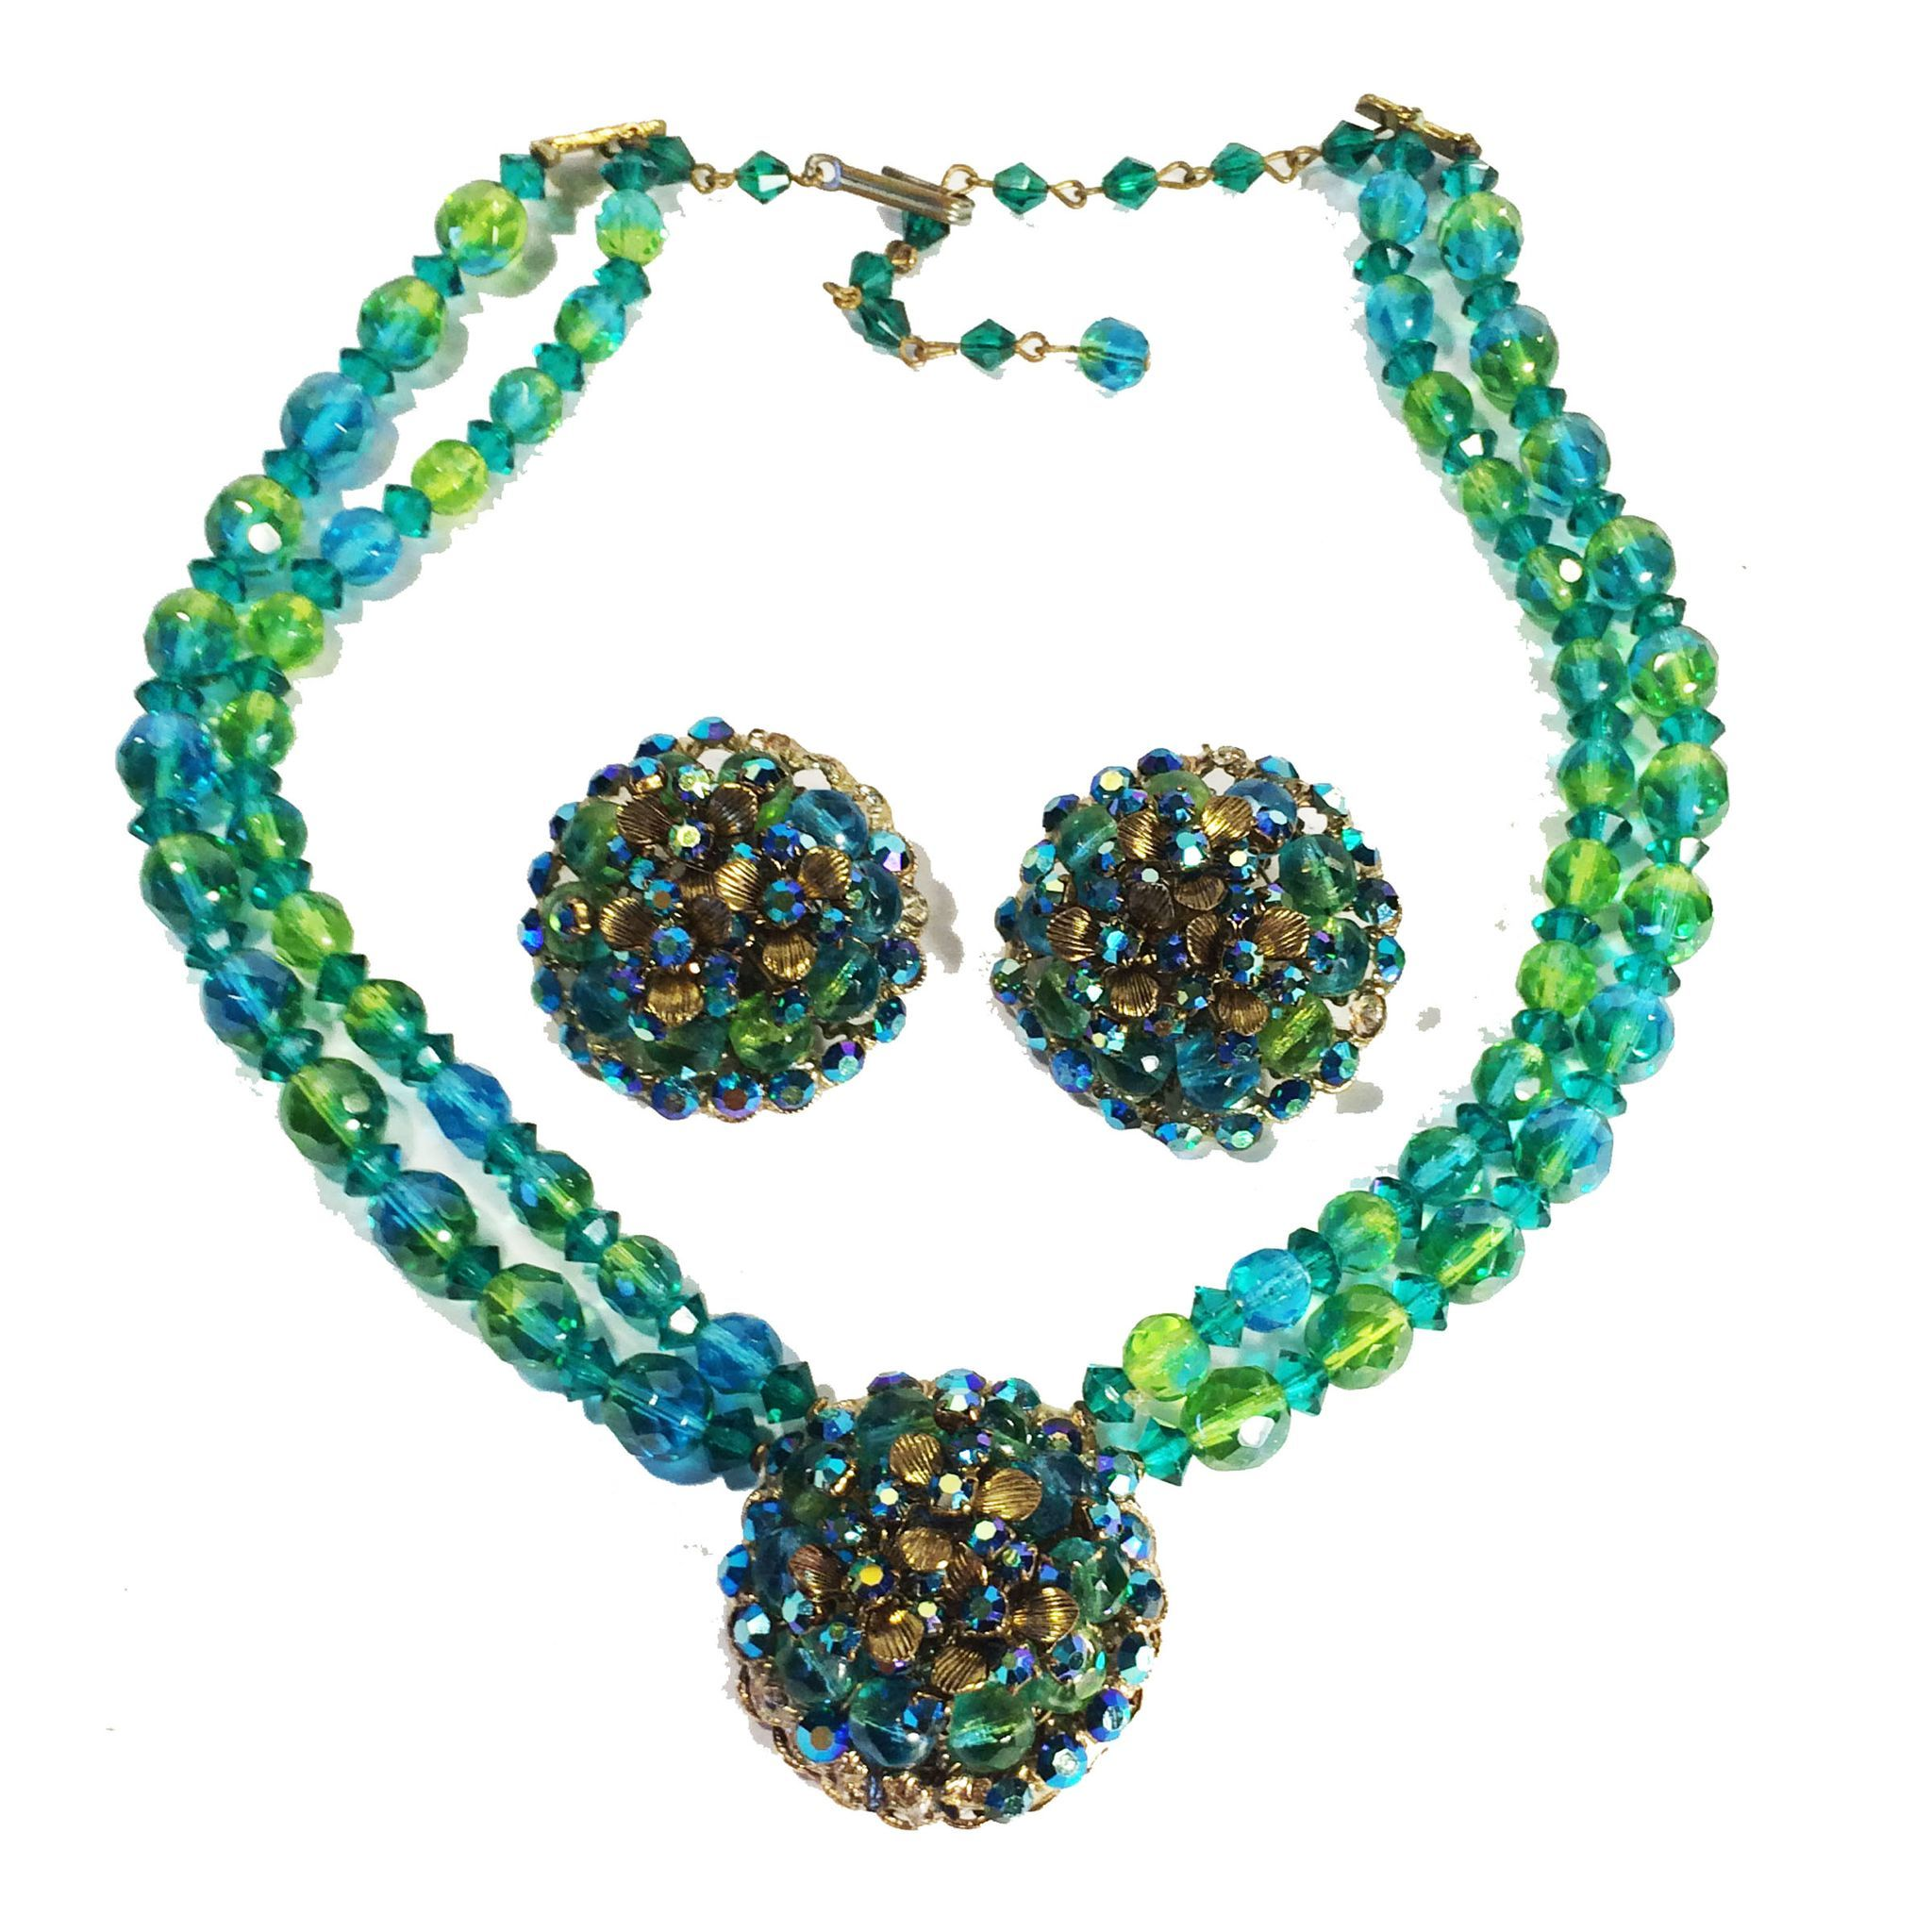 Turq/Aqua and Lime Bi-Colored Beaded Necklace with Center Flower Detail and Earrings